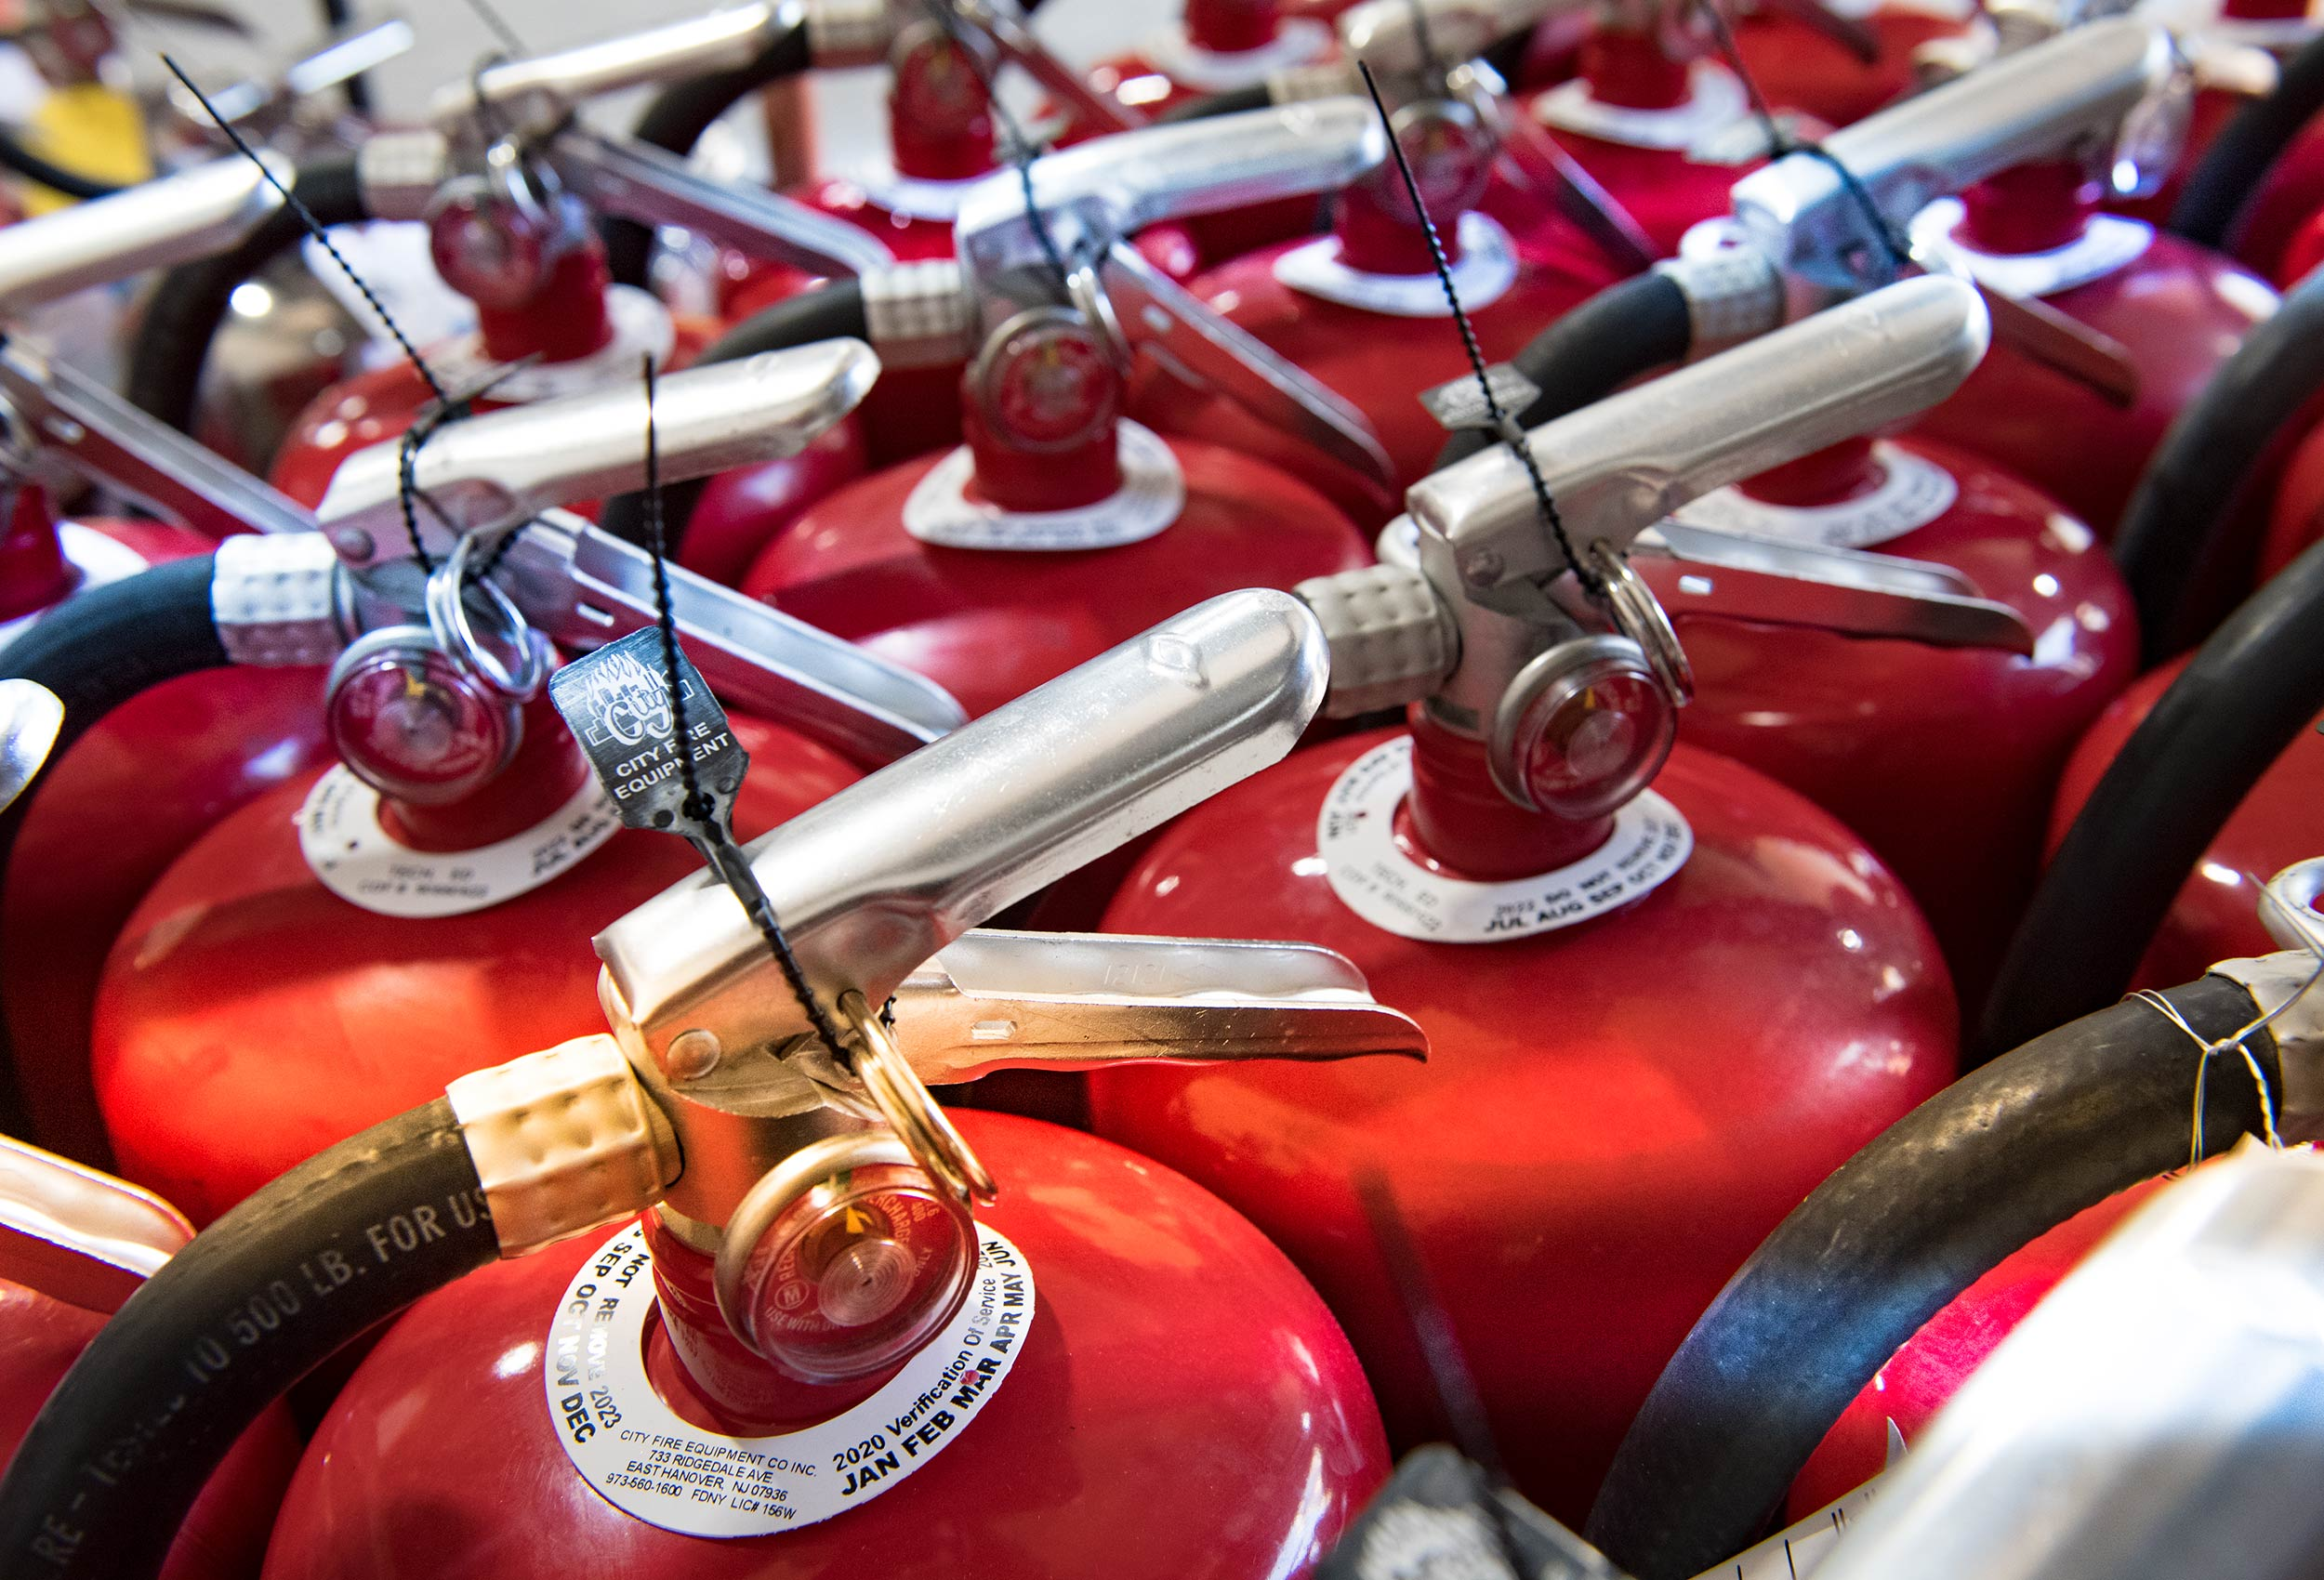 cacicedo_city_fire_red_extinguishers